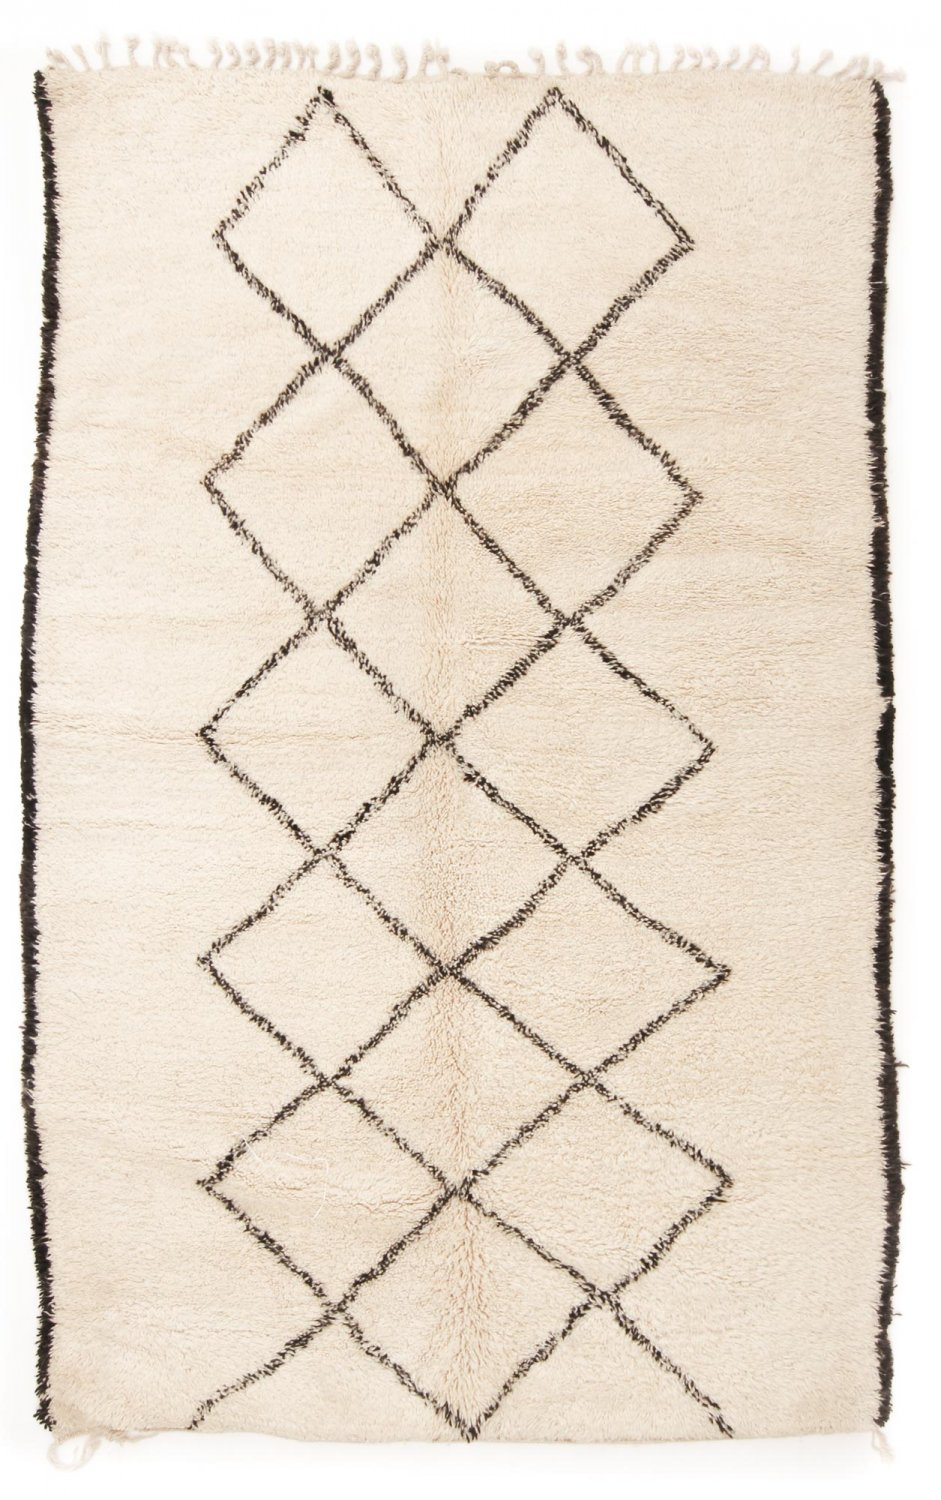 tapis kilim marocain berb re beni ouarain 315 x 190 cm. Black Bedroom Furniture Sets. Home Design Ideas